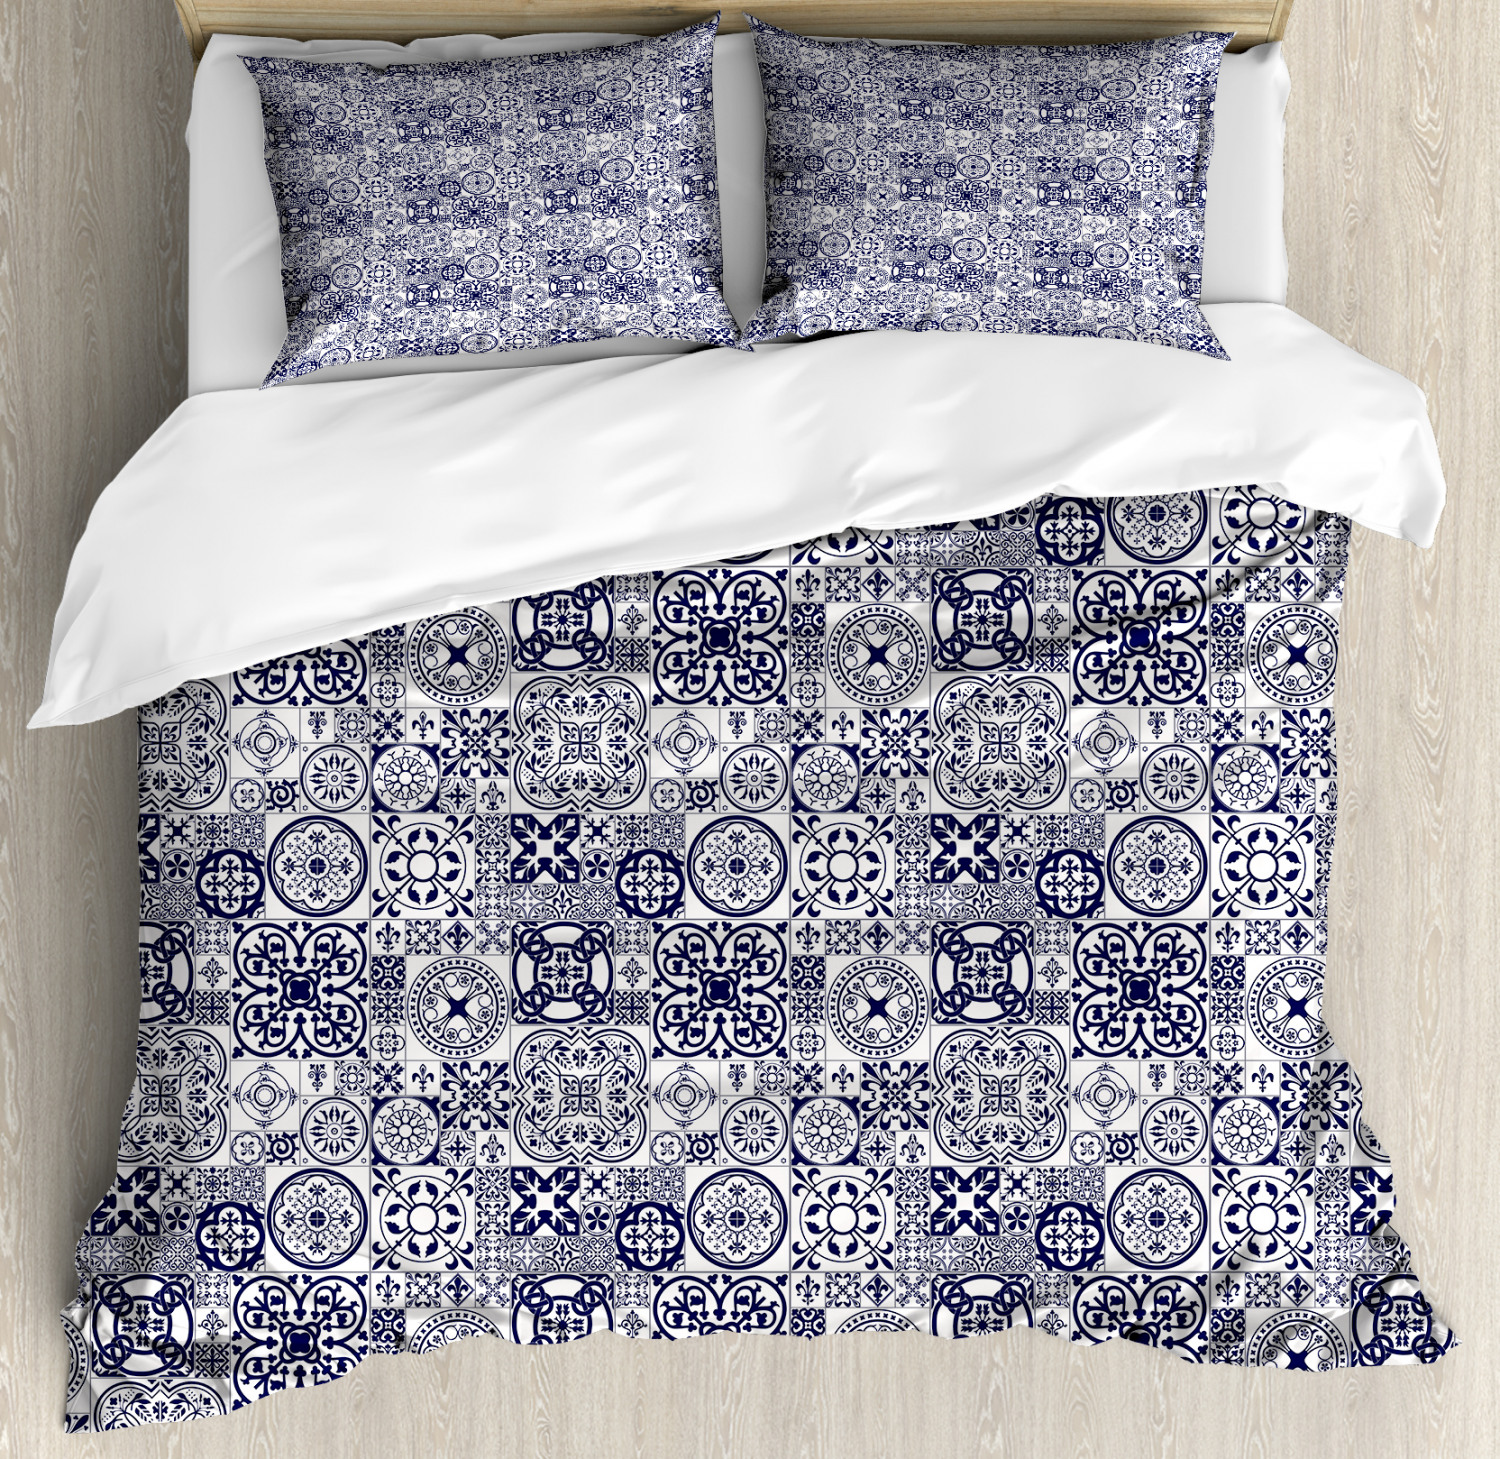 Mgoldccan Duvet Cover Set with Pillow Shams Doodle Ceramic Style Print